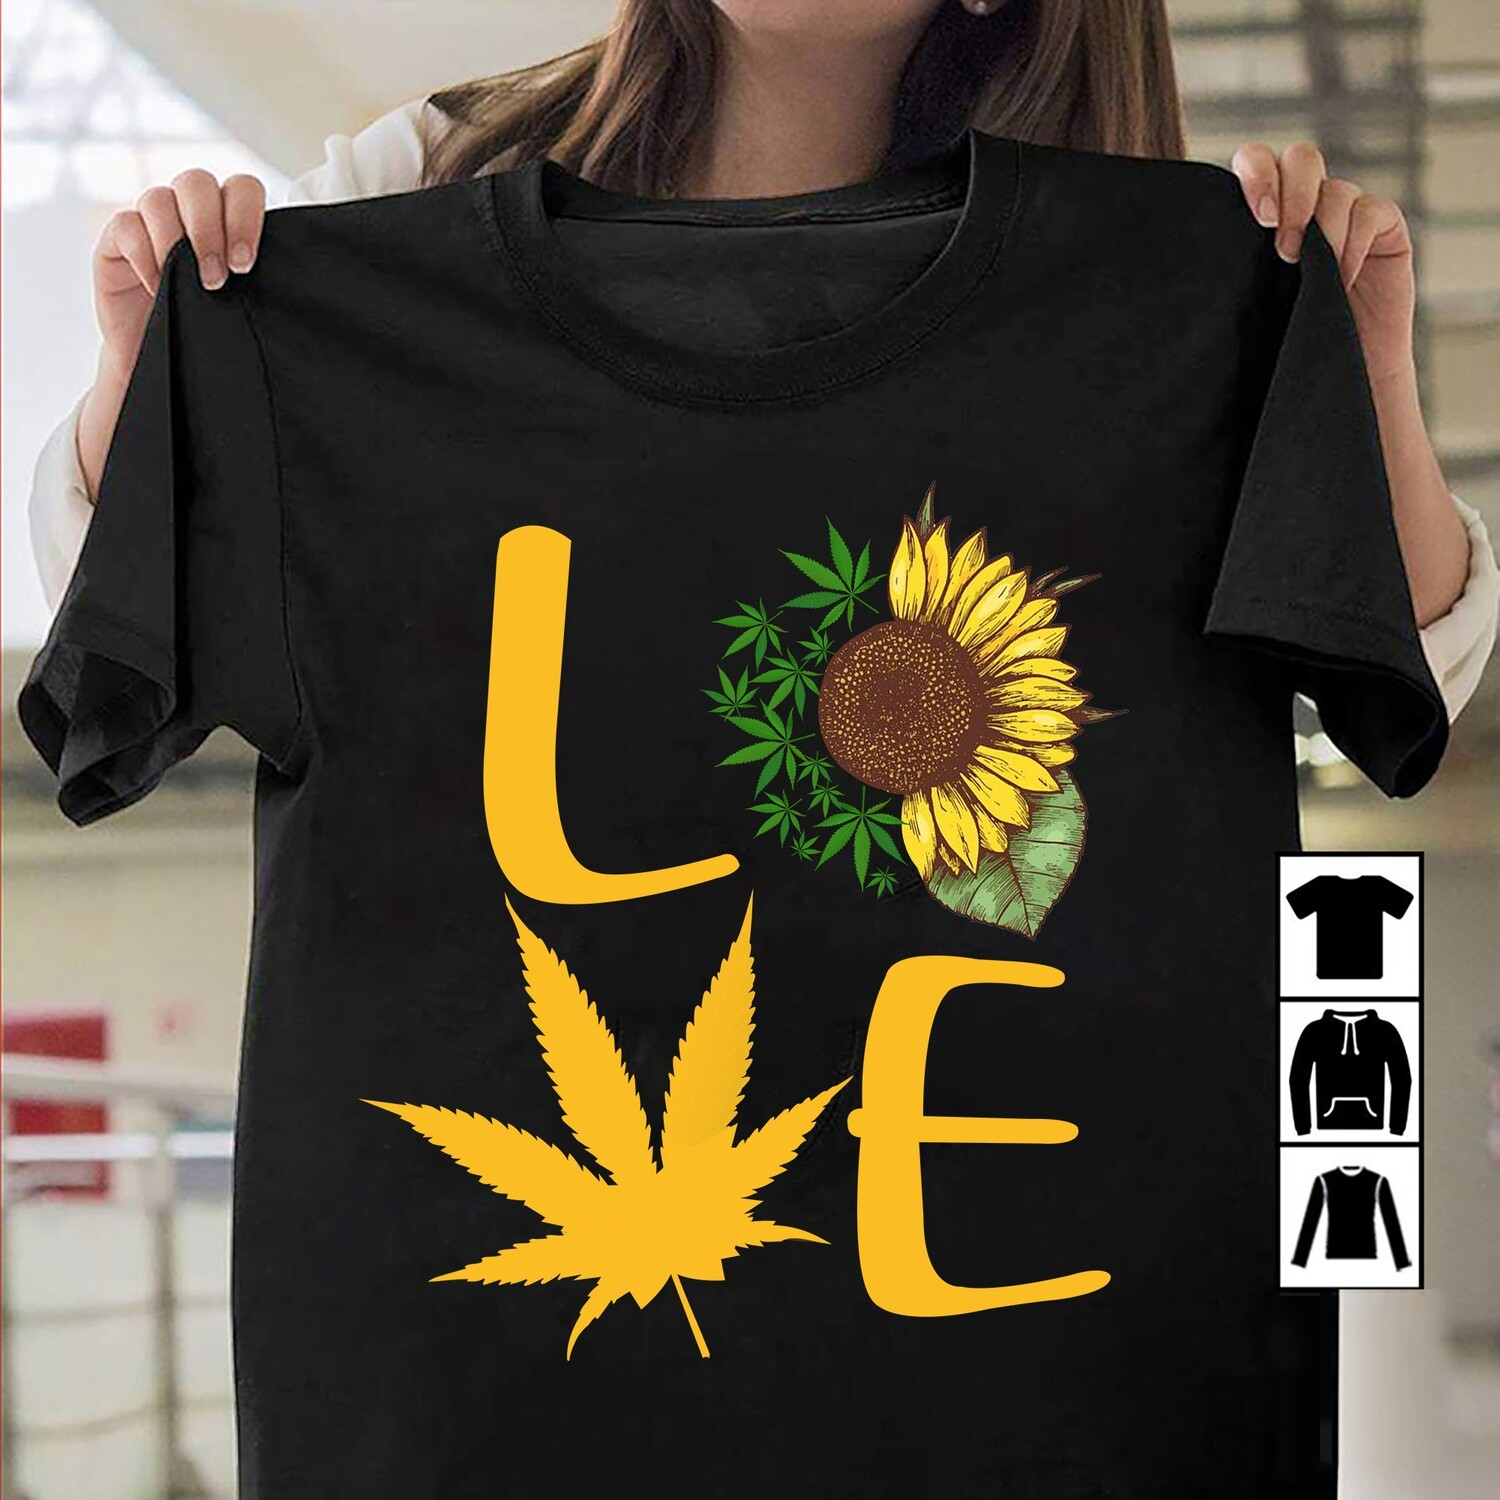 Sunflower Weed Cannabis Leaf Enthusiast marihuana love T-Shirt gift men, gift for women